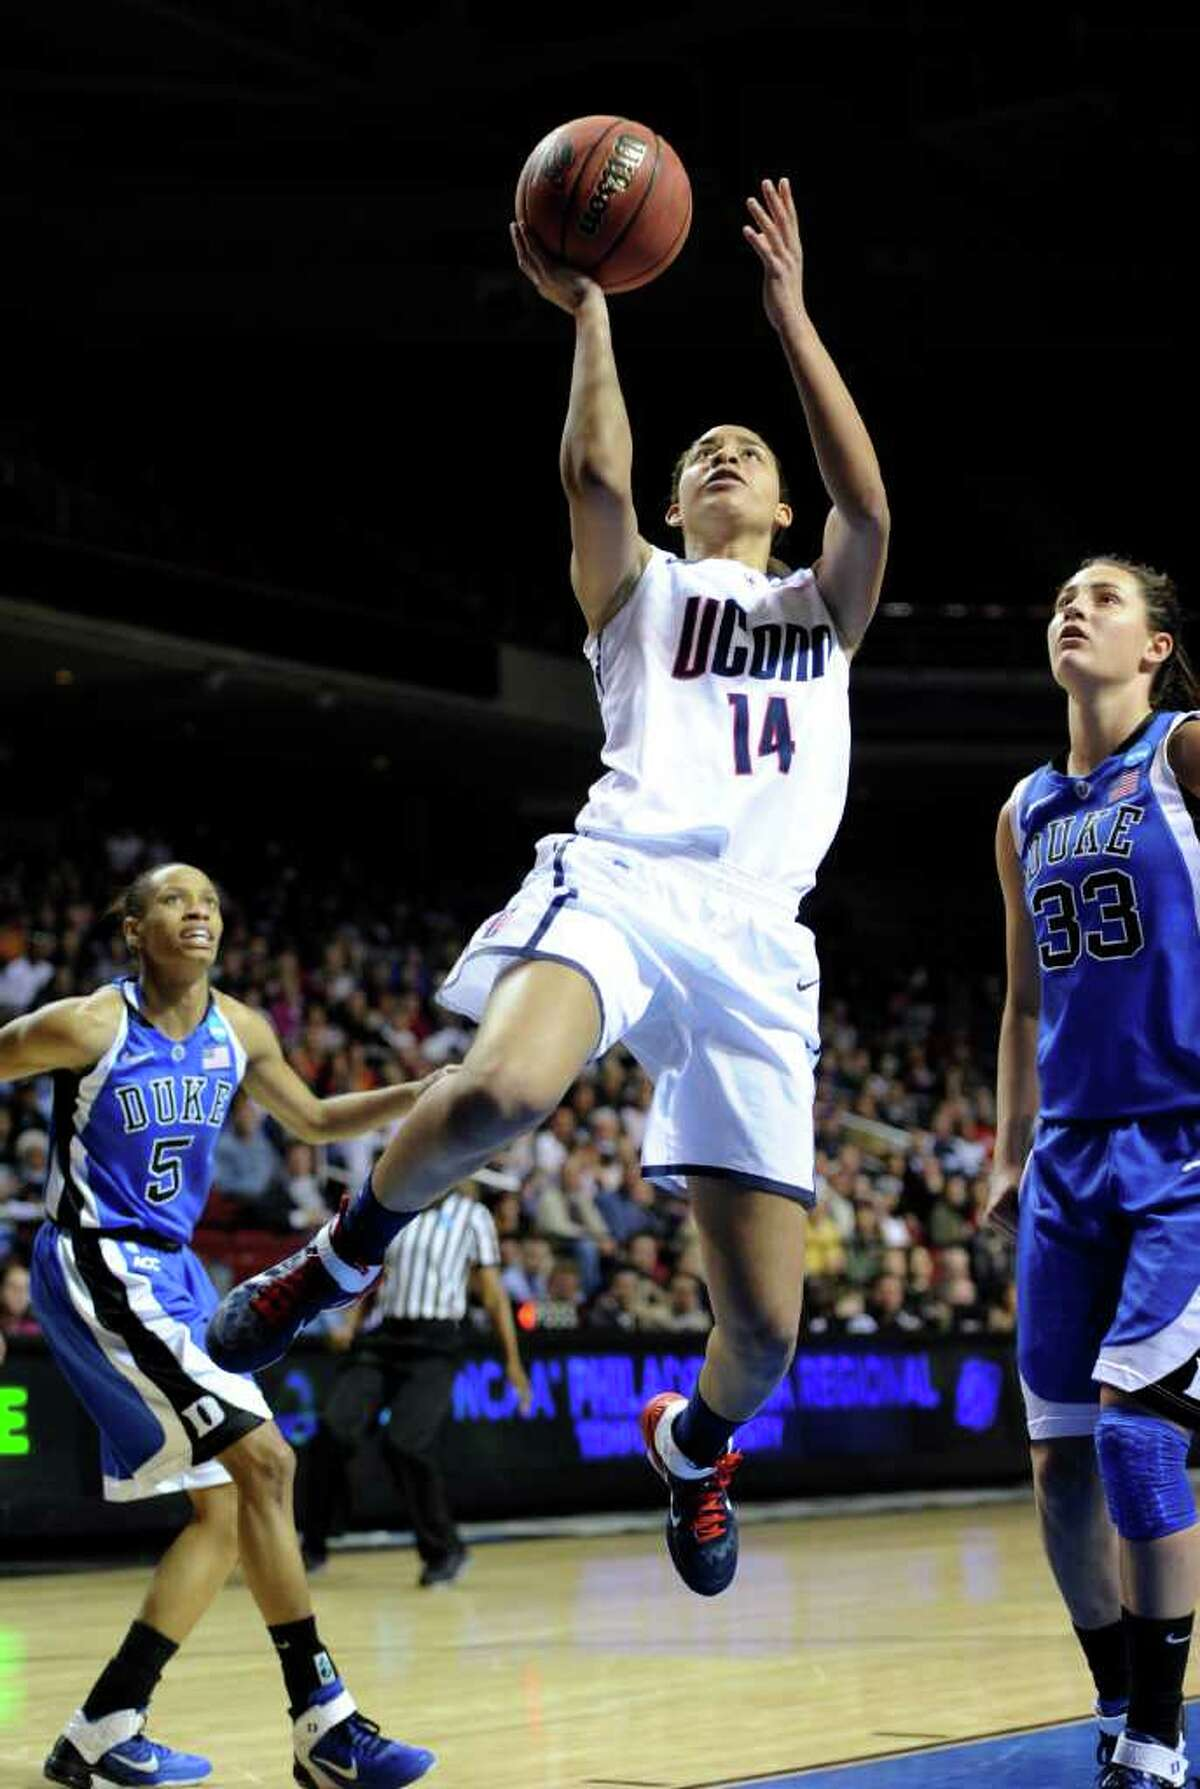 Connecticut's Bria Hartley (14) shoots past Duke's Jasmine Thomas (5) and Haley Peters in the first half of an NCAA women's college basketball tournament regional final game, Tuesday, March 29, 2011, in Philadelphia. (AP Photo/Barbara Johnston)